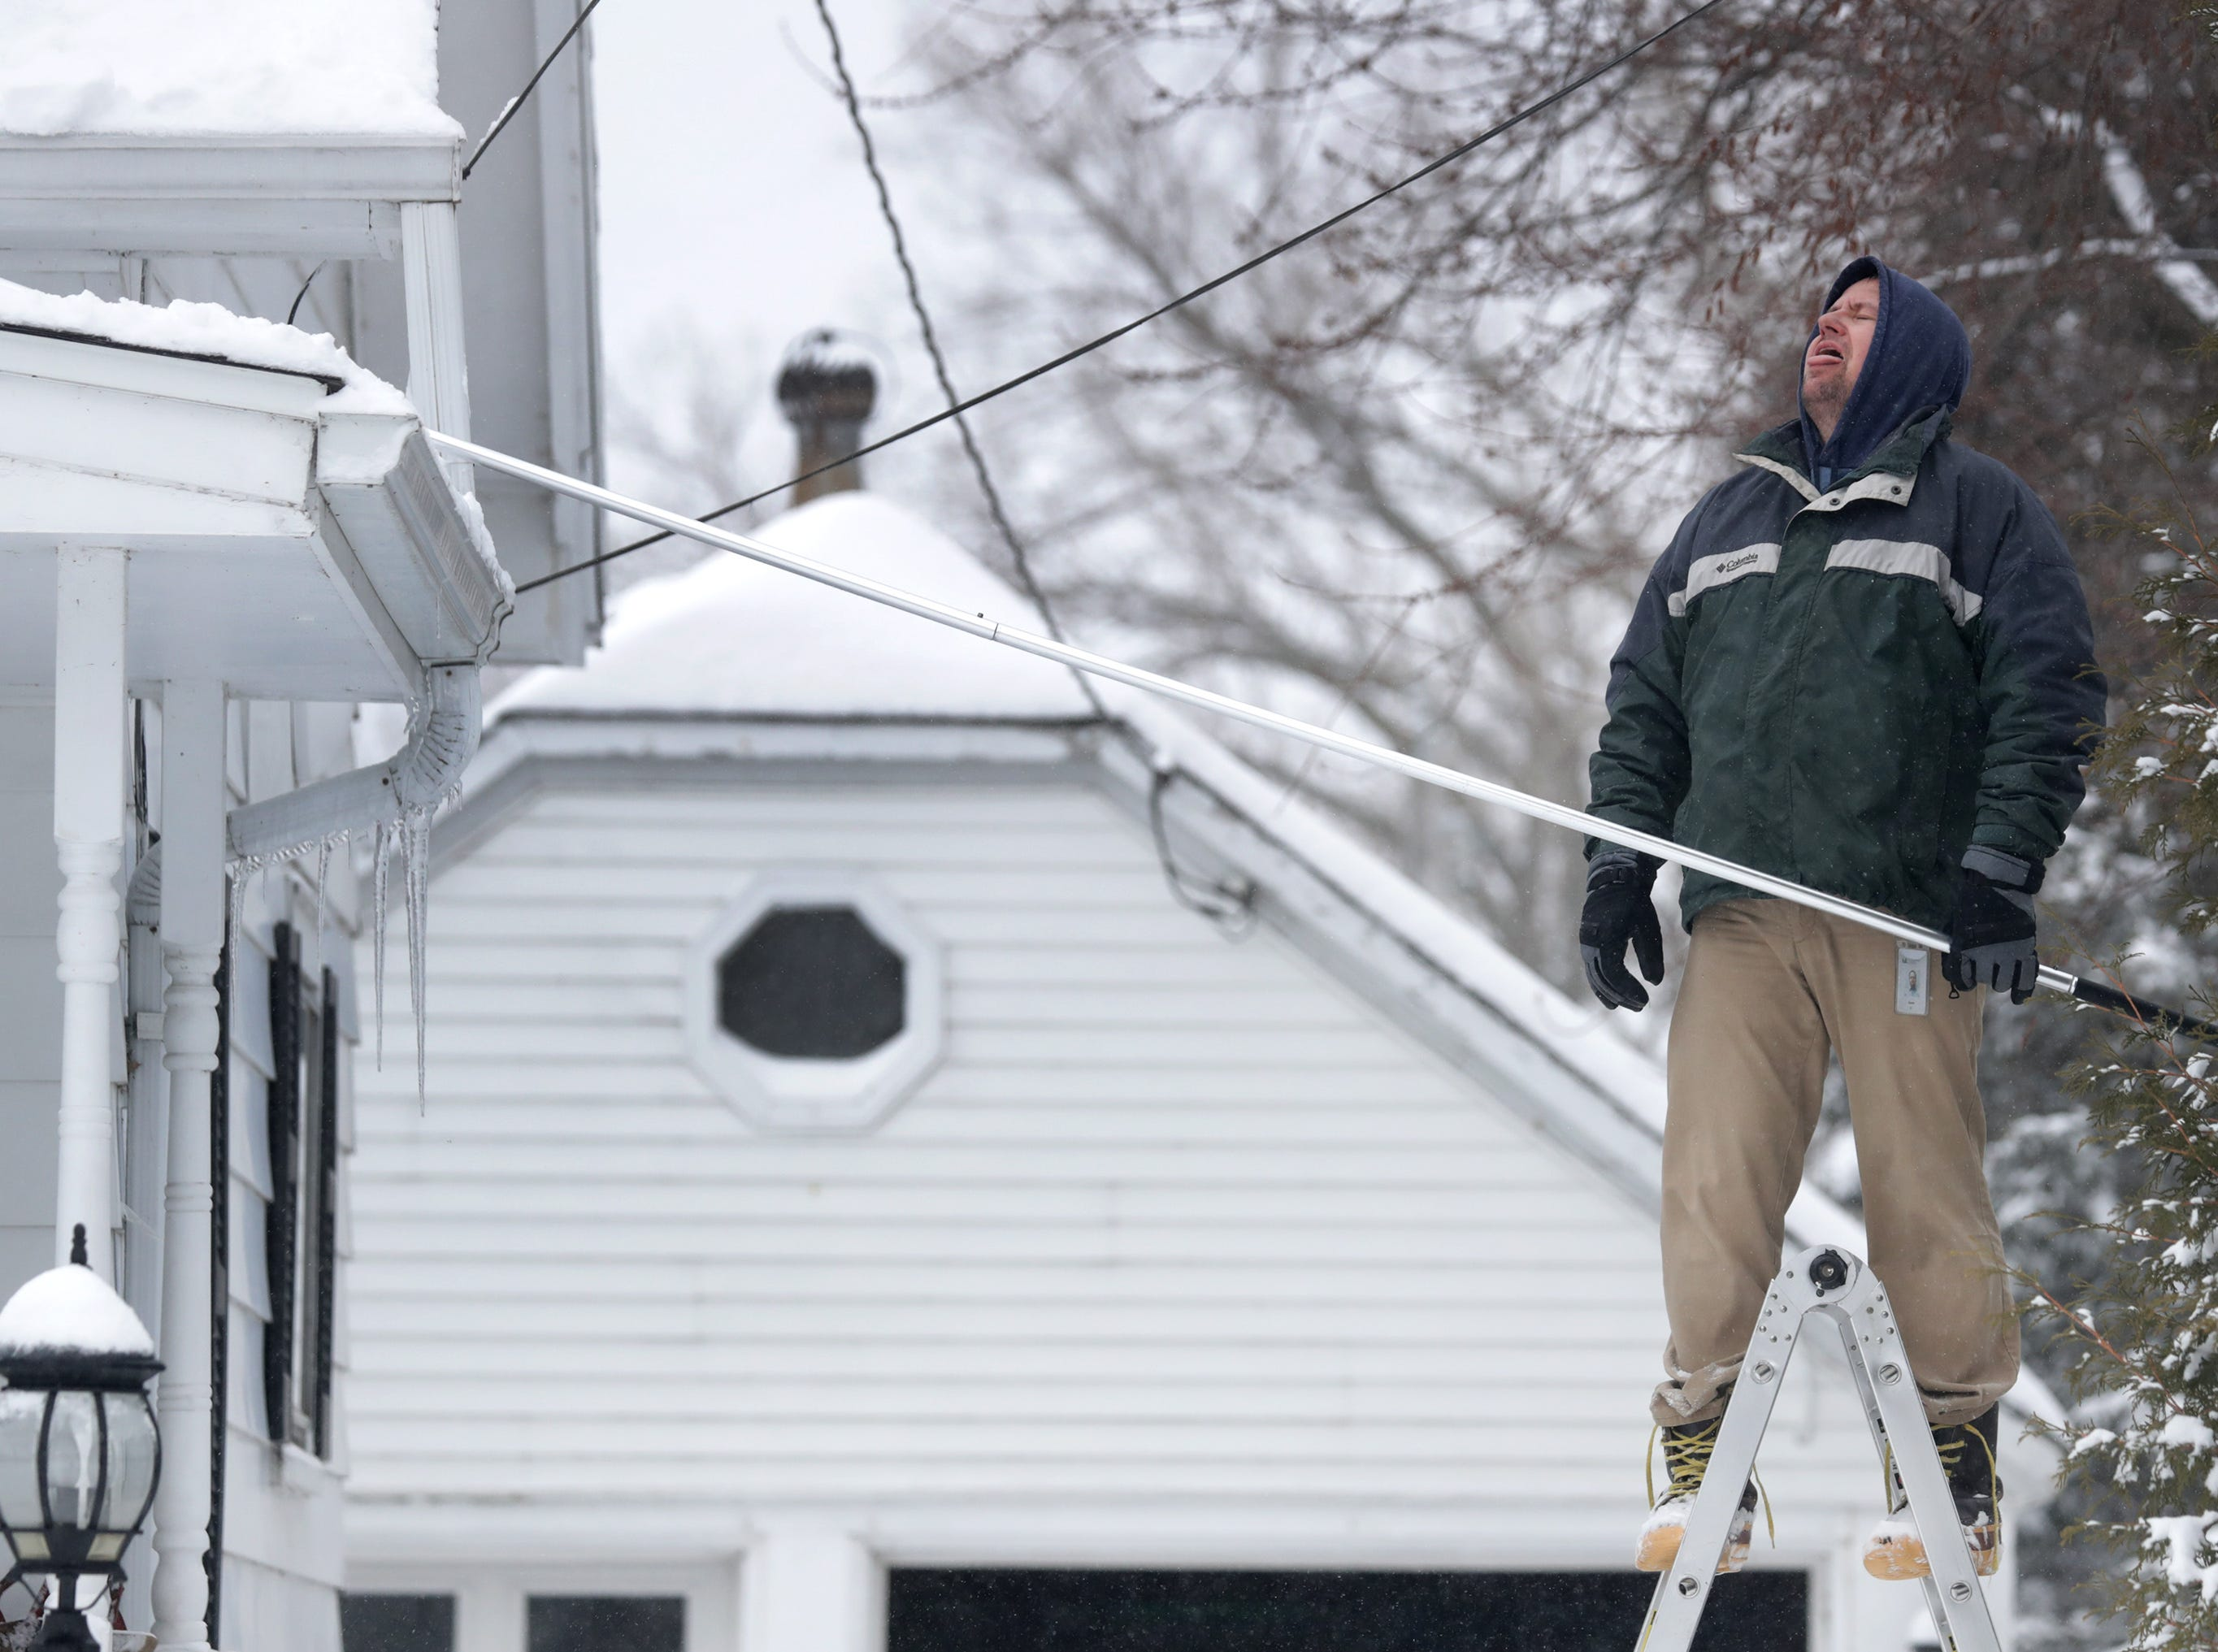 Jason Griffith takes a break from clearing snow off of the roof of his house and to catches a snowflake on his tongue on Tuesday, February 12, 2019, in Little Chute, Wis. The latest snow storm to move through the state dropped several inches of snow overnight, 6 to 12 inches are expcted by Tuesday evening.Wm. Glasheen/USA TODAY NETWORK-Wisconsin.